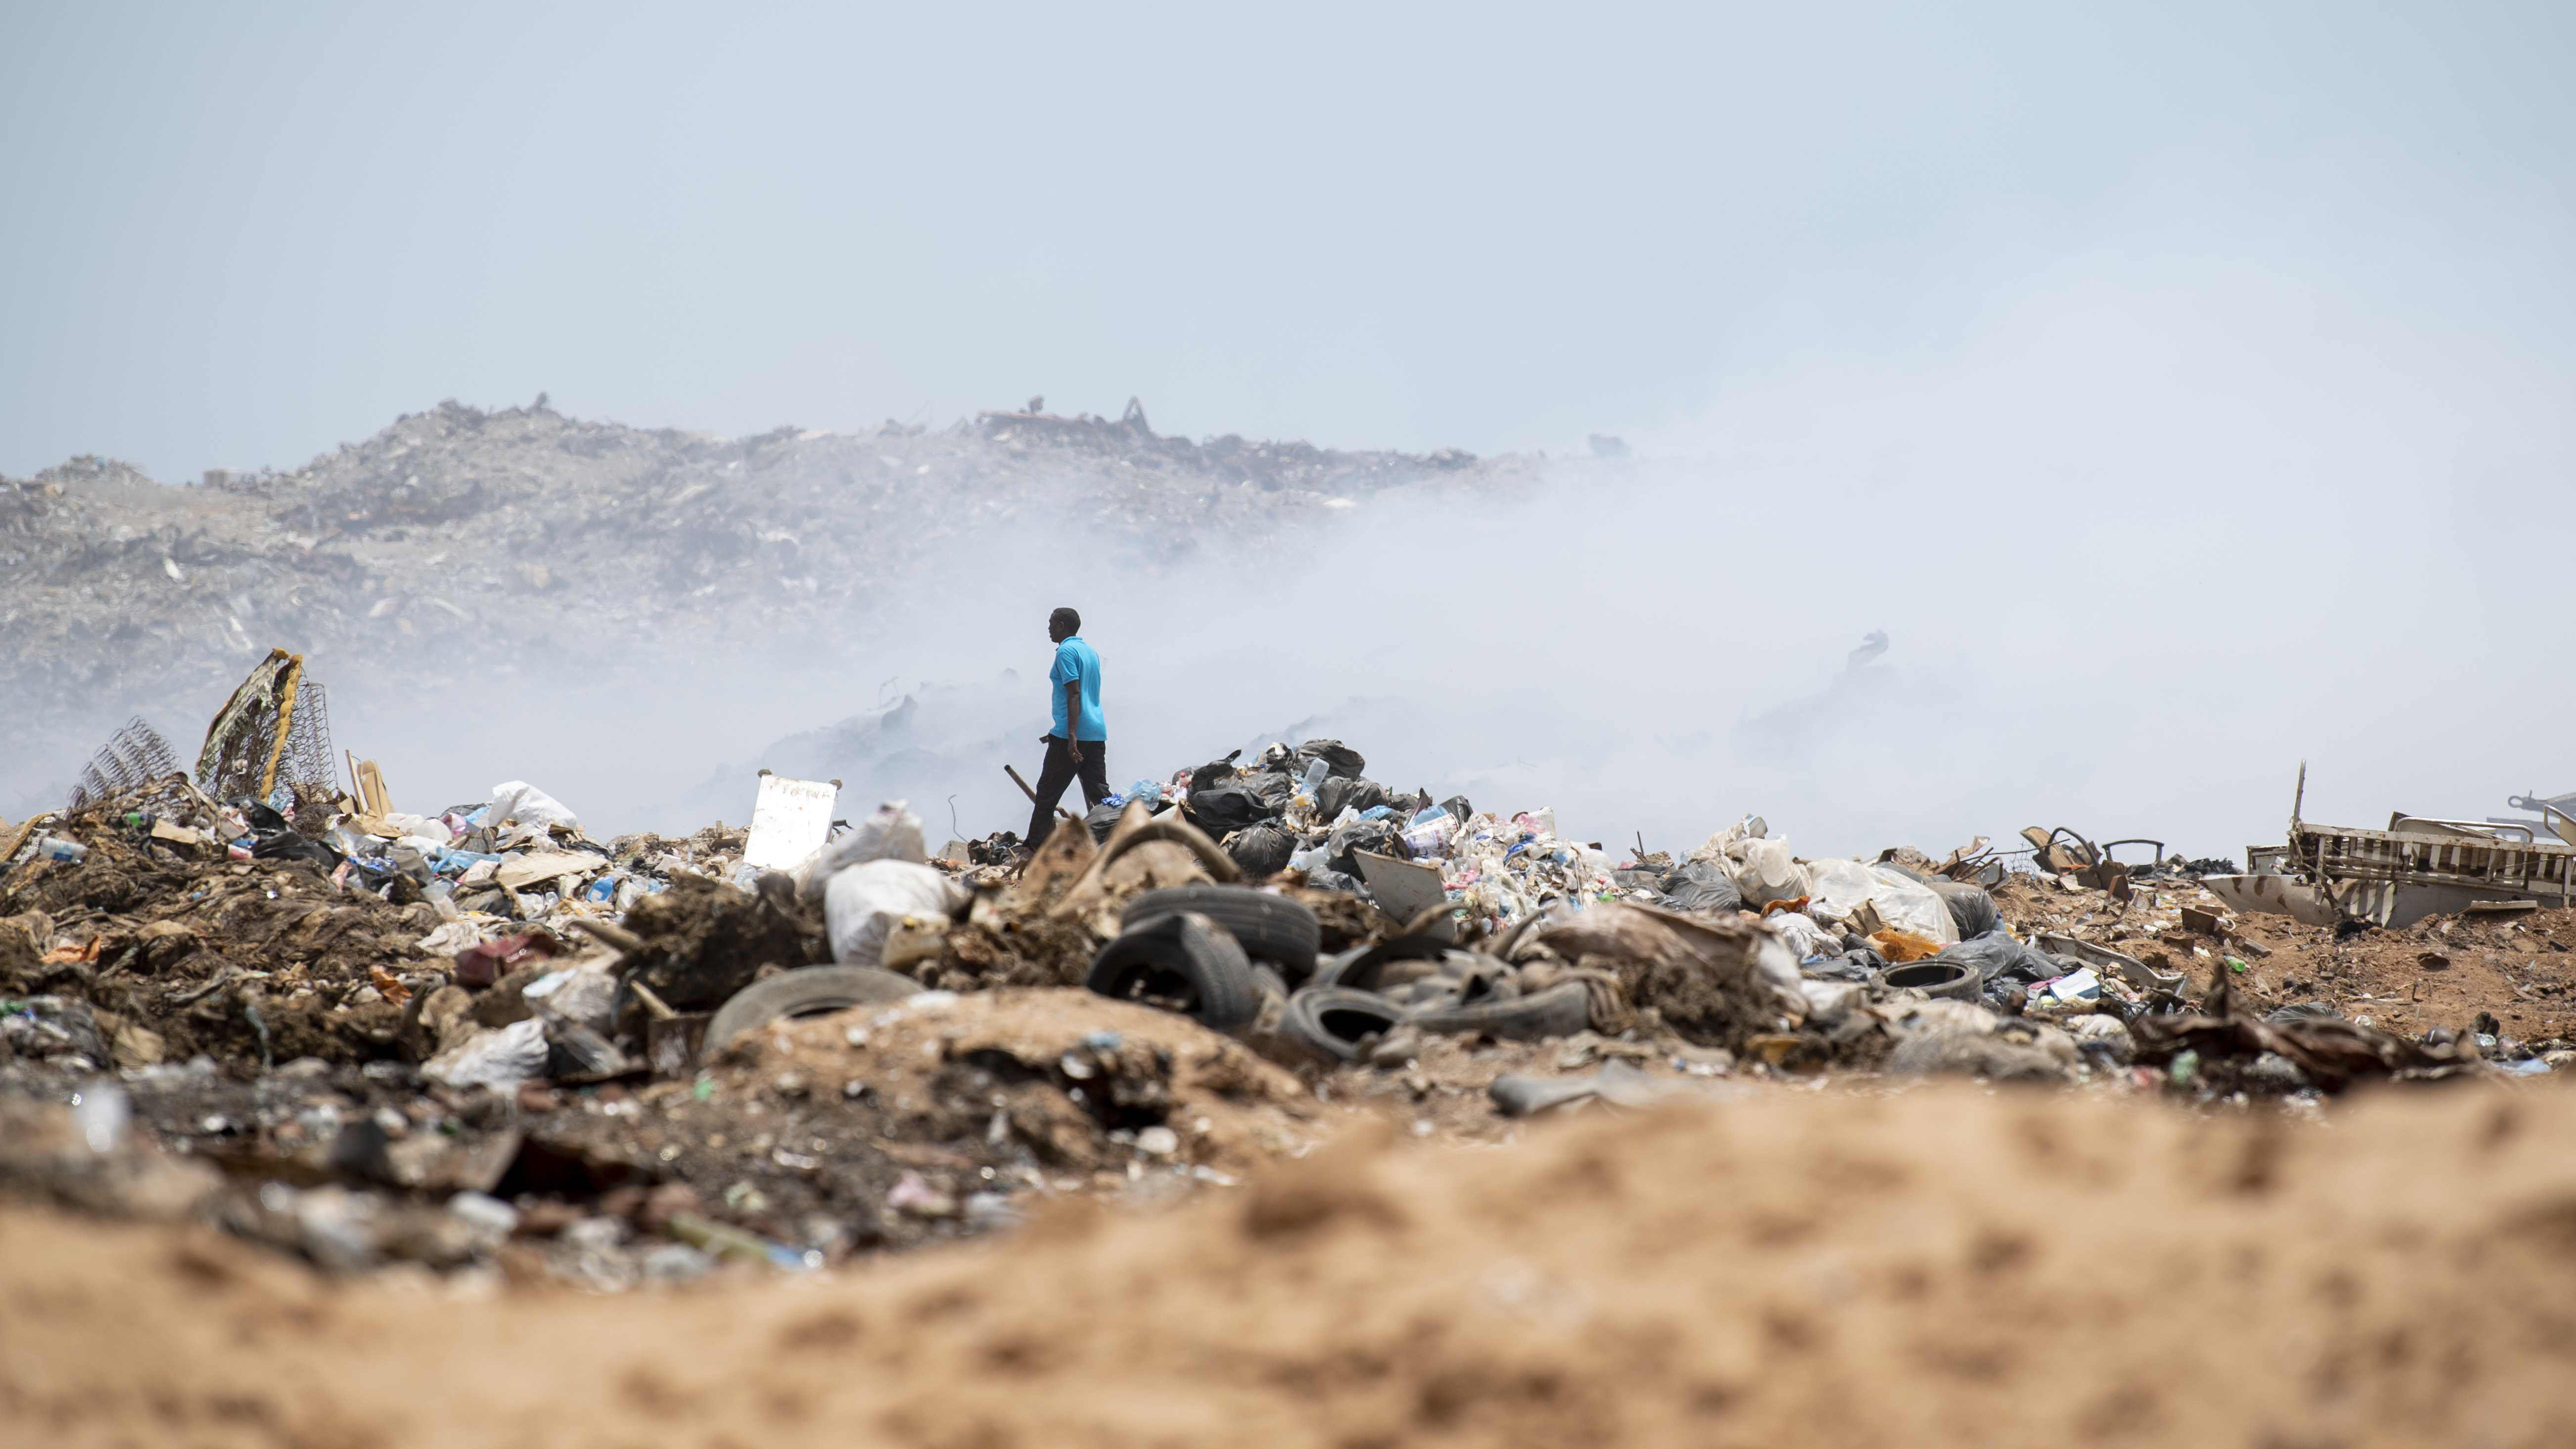 A Djiboutian Fire Brigade firefighter traverses the Douda landfill in Djibouti, Aug. 14, 2019. At the request of the government of Djibouti and in support of the U.S. Embassy Djibouti, Combined Joint Task Force-Horn of Africa engineers worked alongside Camp Lemonnier, Djiboutian, French and Chinese firefighters to help stop a fire at the landfill from spreading. (U.S. Air Force photo by Staff Sgt. J.D. Strong II)